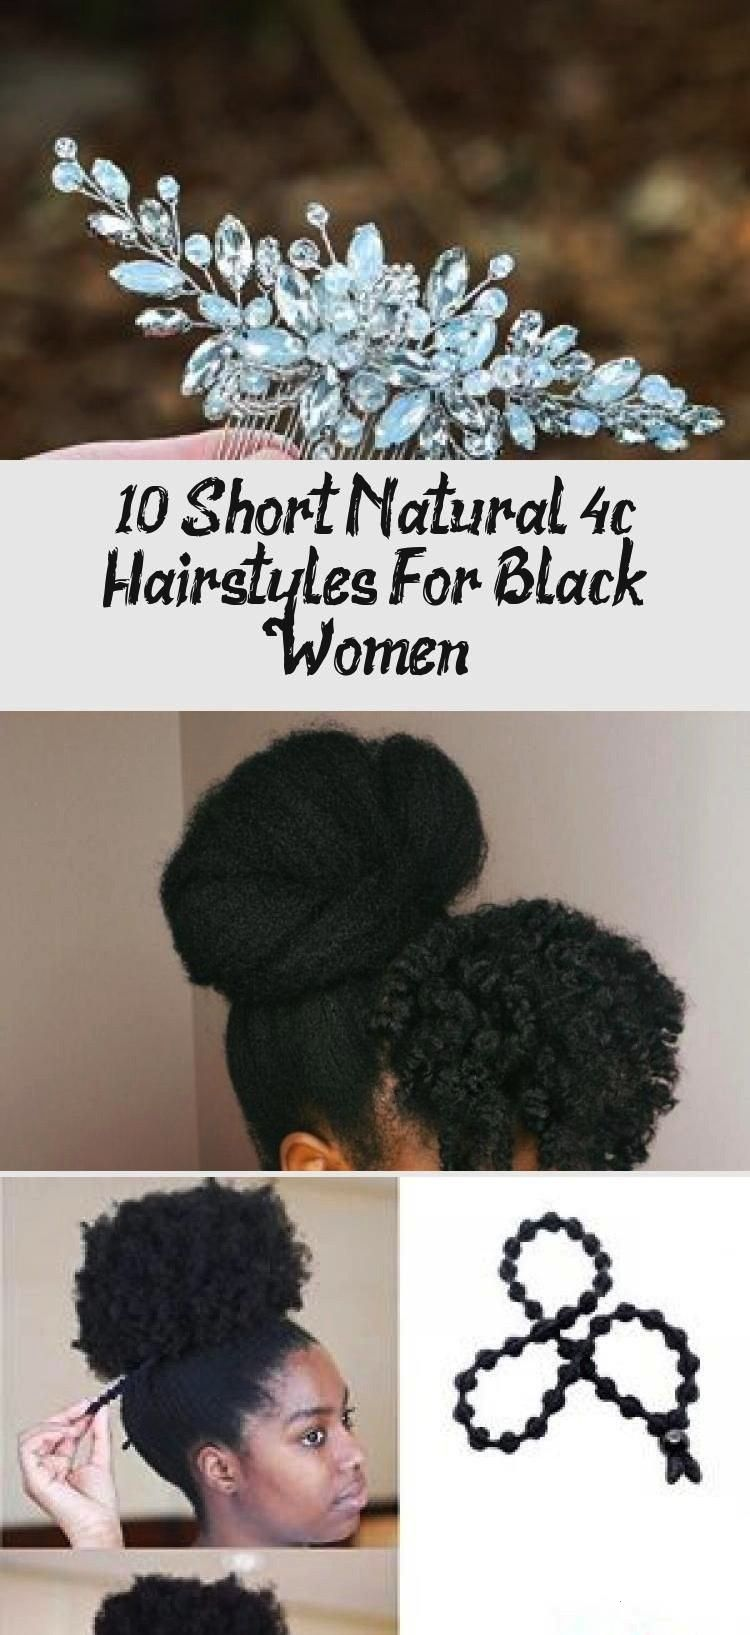 #american #struggle #natural #african #africa #women #their #sleek #hair #updo #down #who #for #to #4c4c natural hair updo for African American women who struggle to sleek down their...,  4c natural hair updo for African American women who struggle to sleek down their..., 4c natural hair updo for African American women who struggle to sleek down their...,   Love this braided style  Abstract Pencil Drawings | Pencil and Color Pencil pieces by Amy Namsiriwan  Male Massage Therapists Collect...